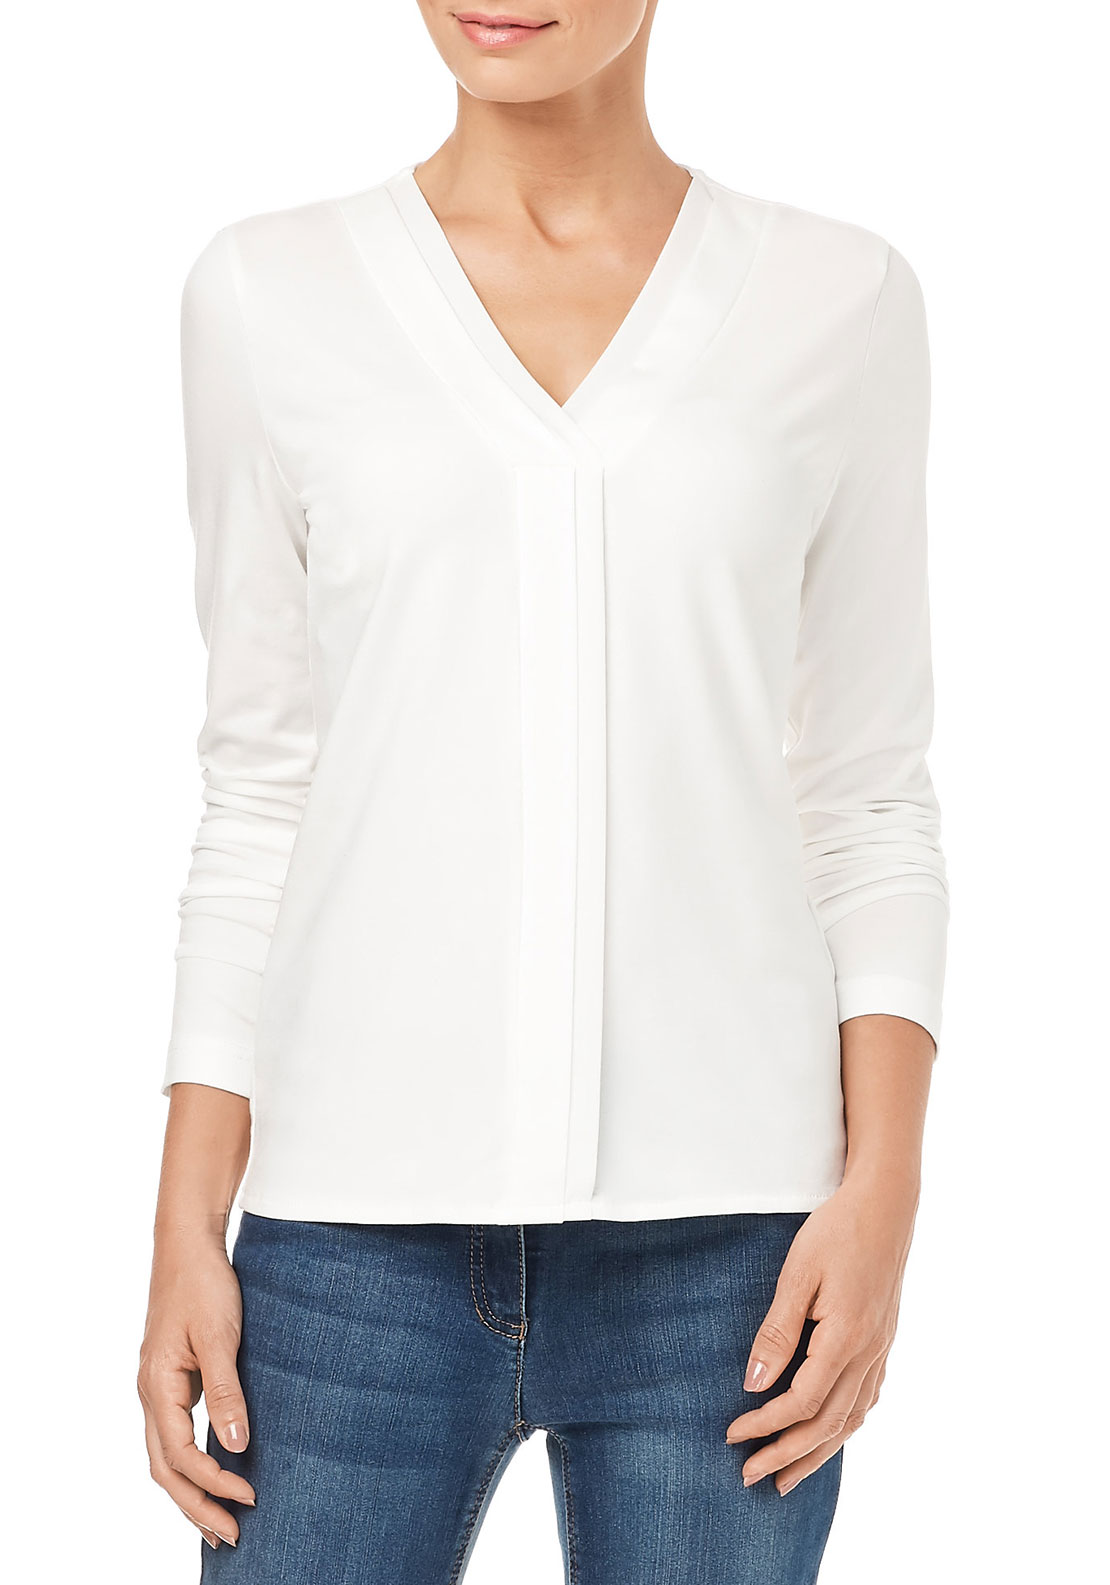 Gerry Weber V-Neck Long Sleeve Top, White